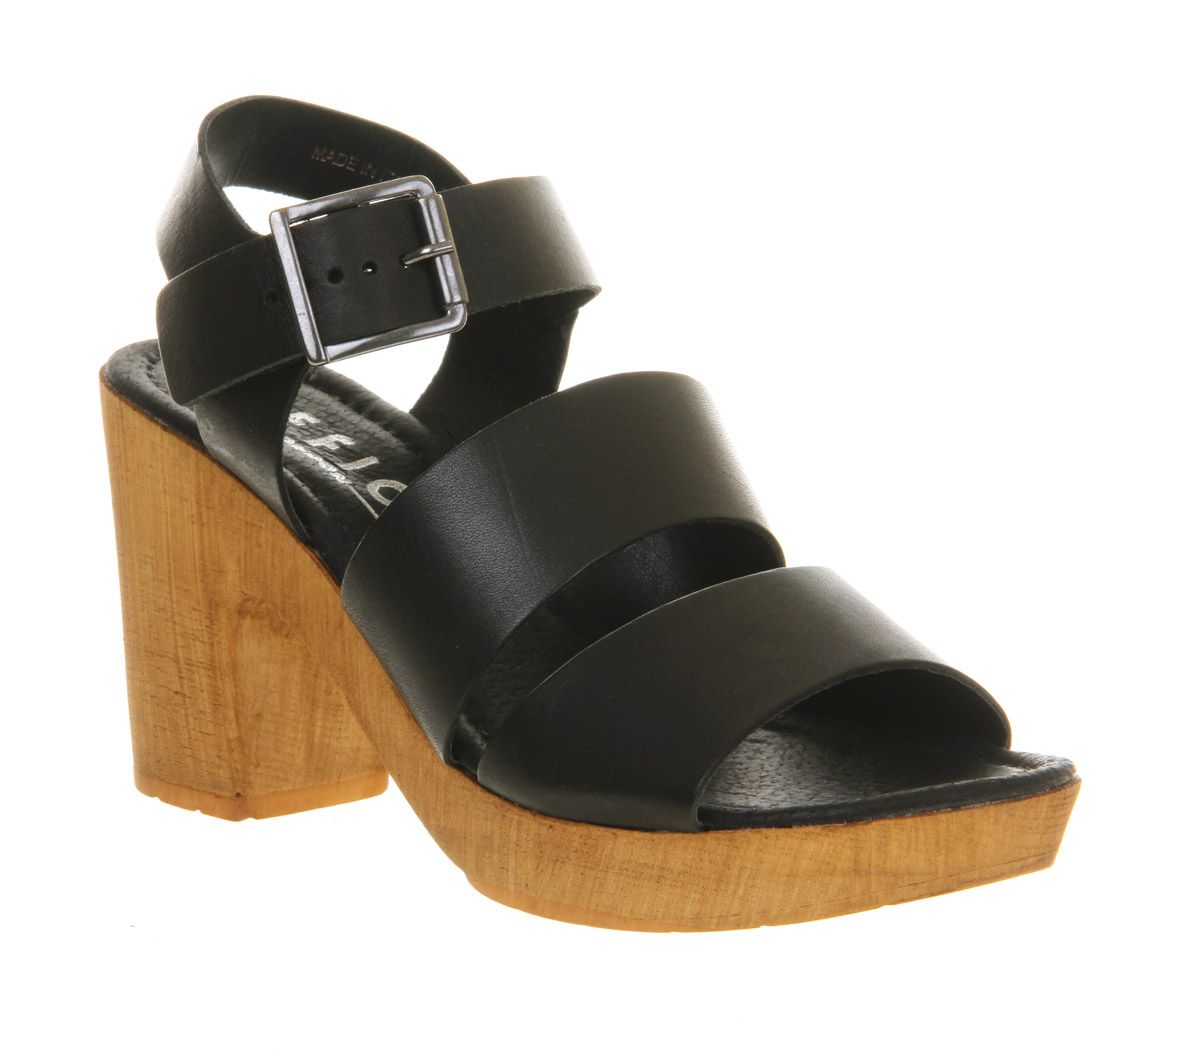 Deer leather open toe wedge mid heel sandals